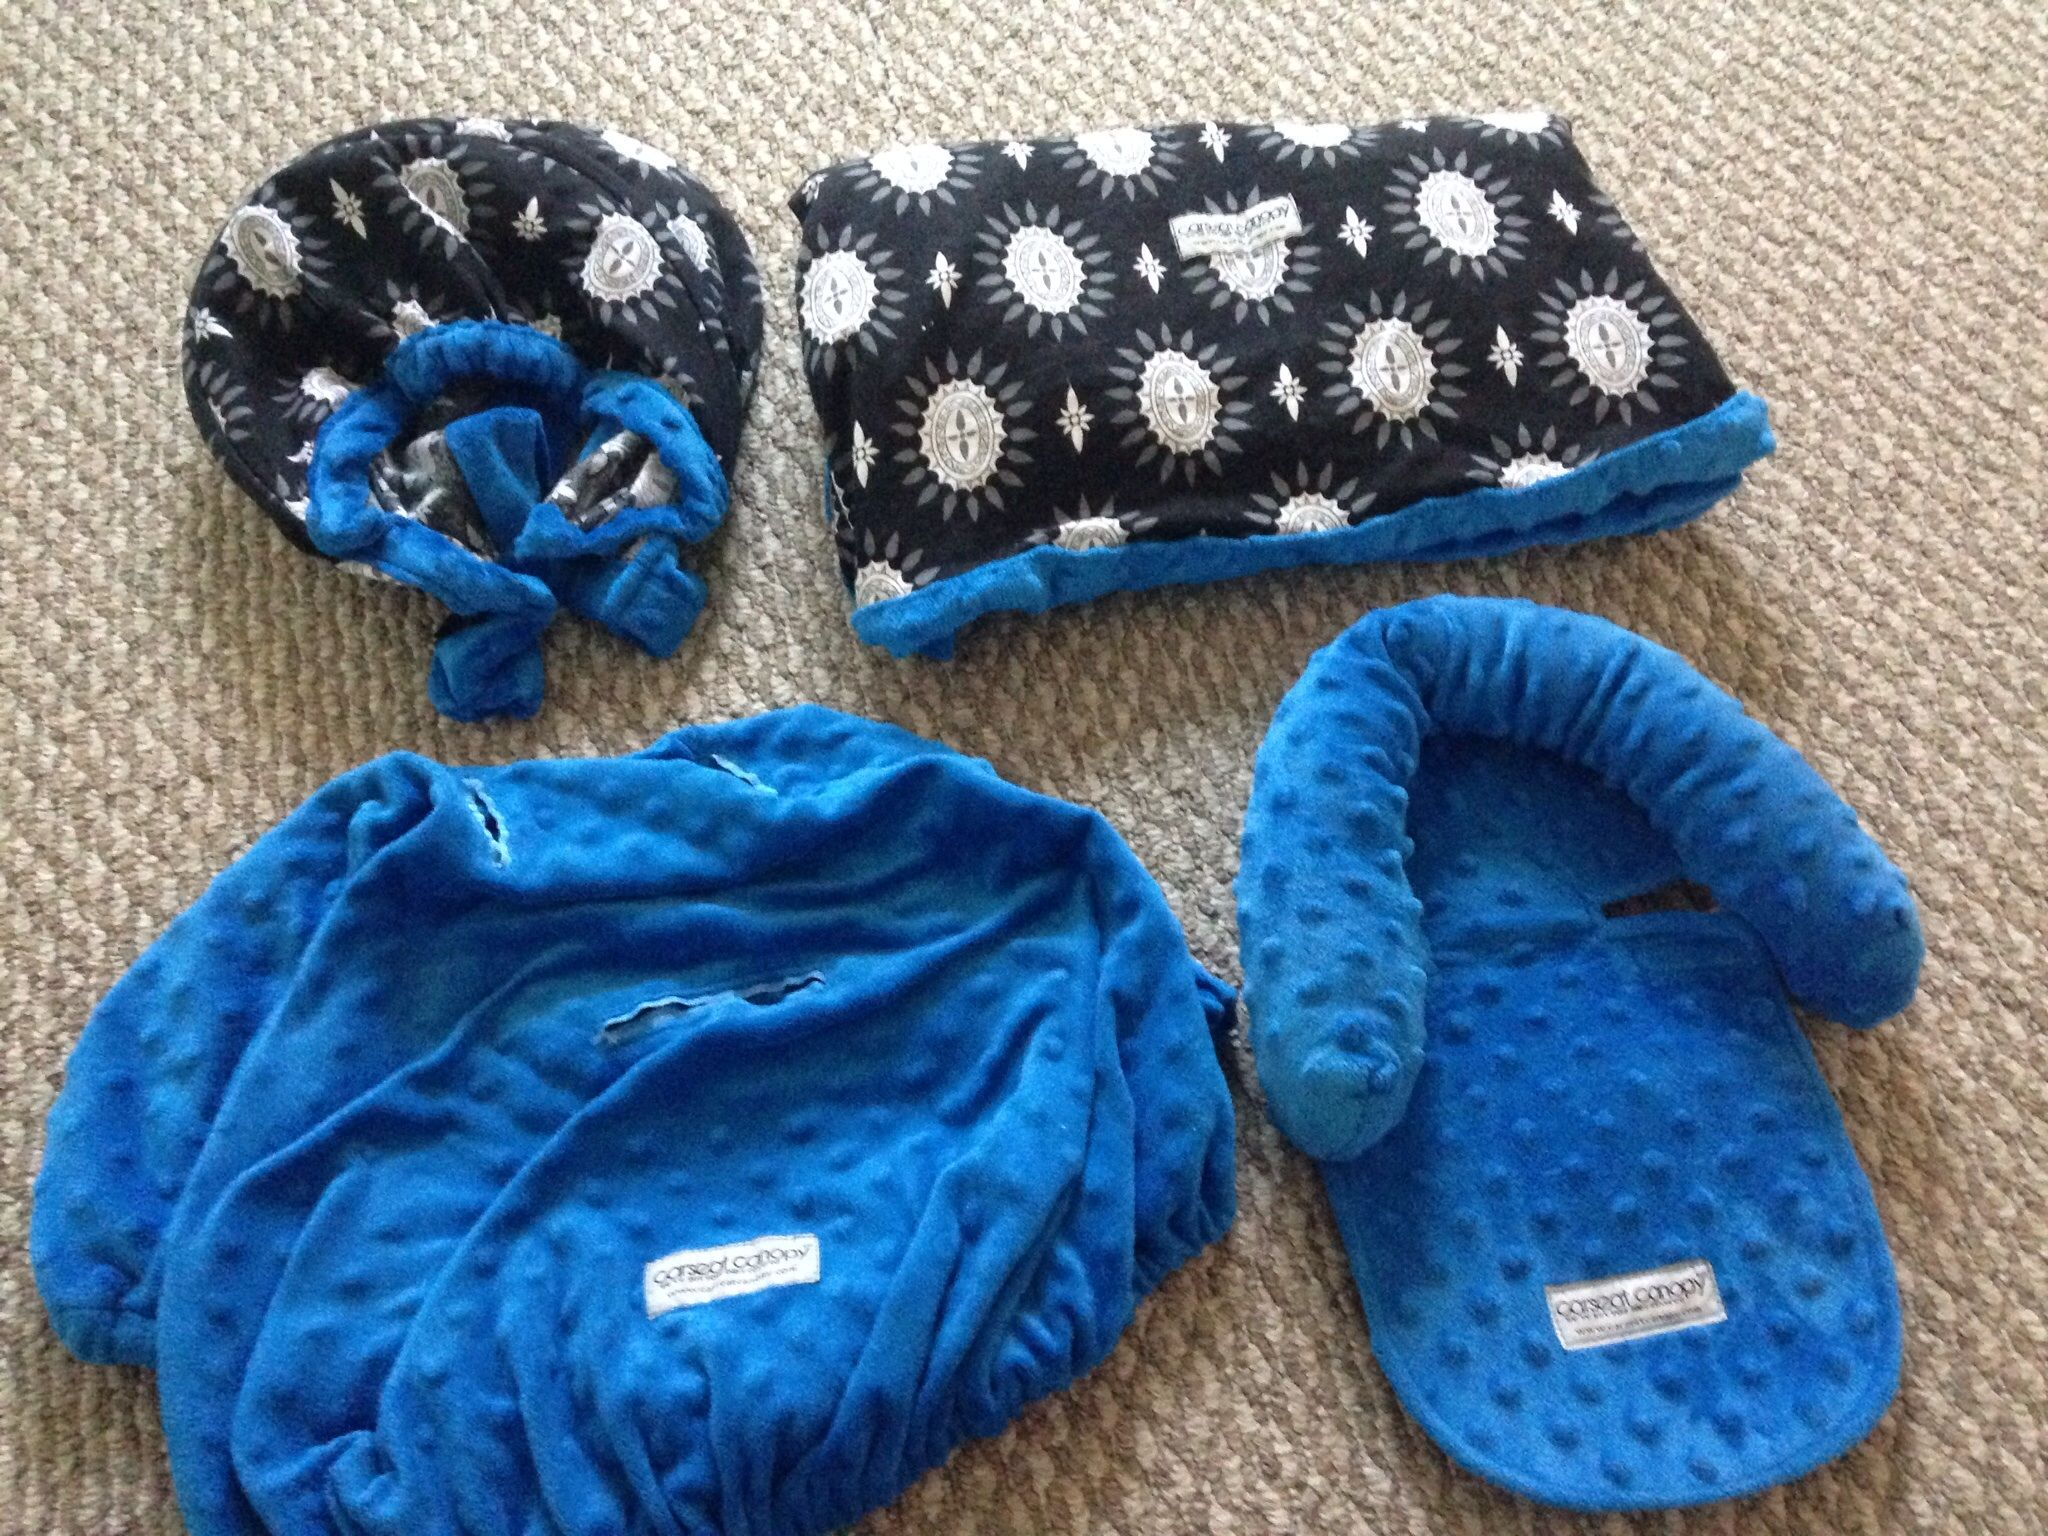 Complete warm carseat cover, hood cover, inside cover all